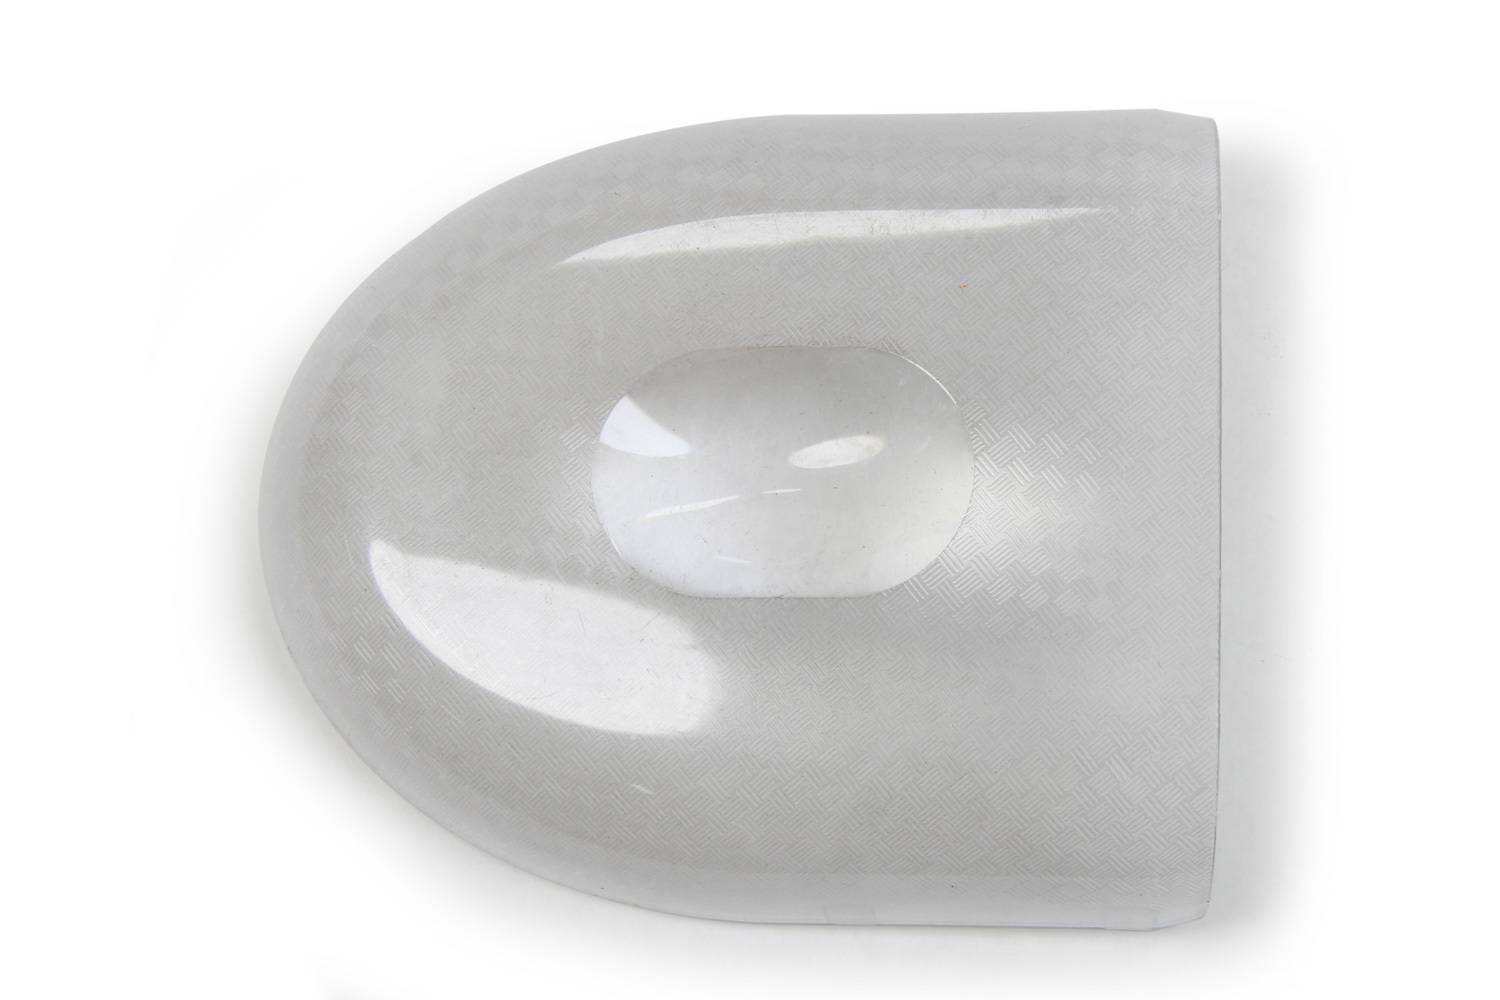 REESE Replacement Part Interio r Light #76 Lens P/N - 34-76-028